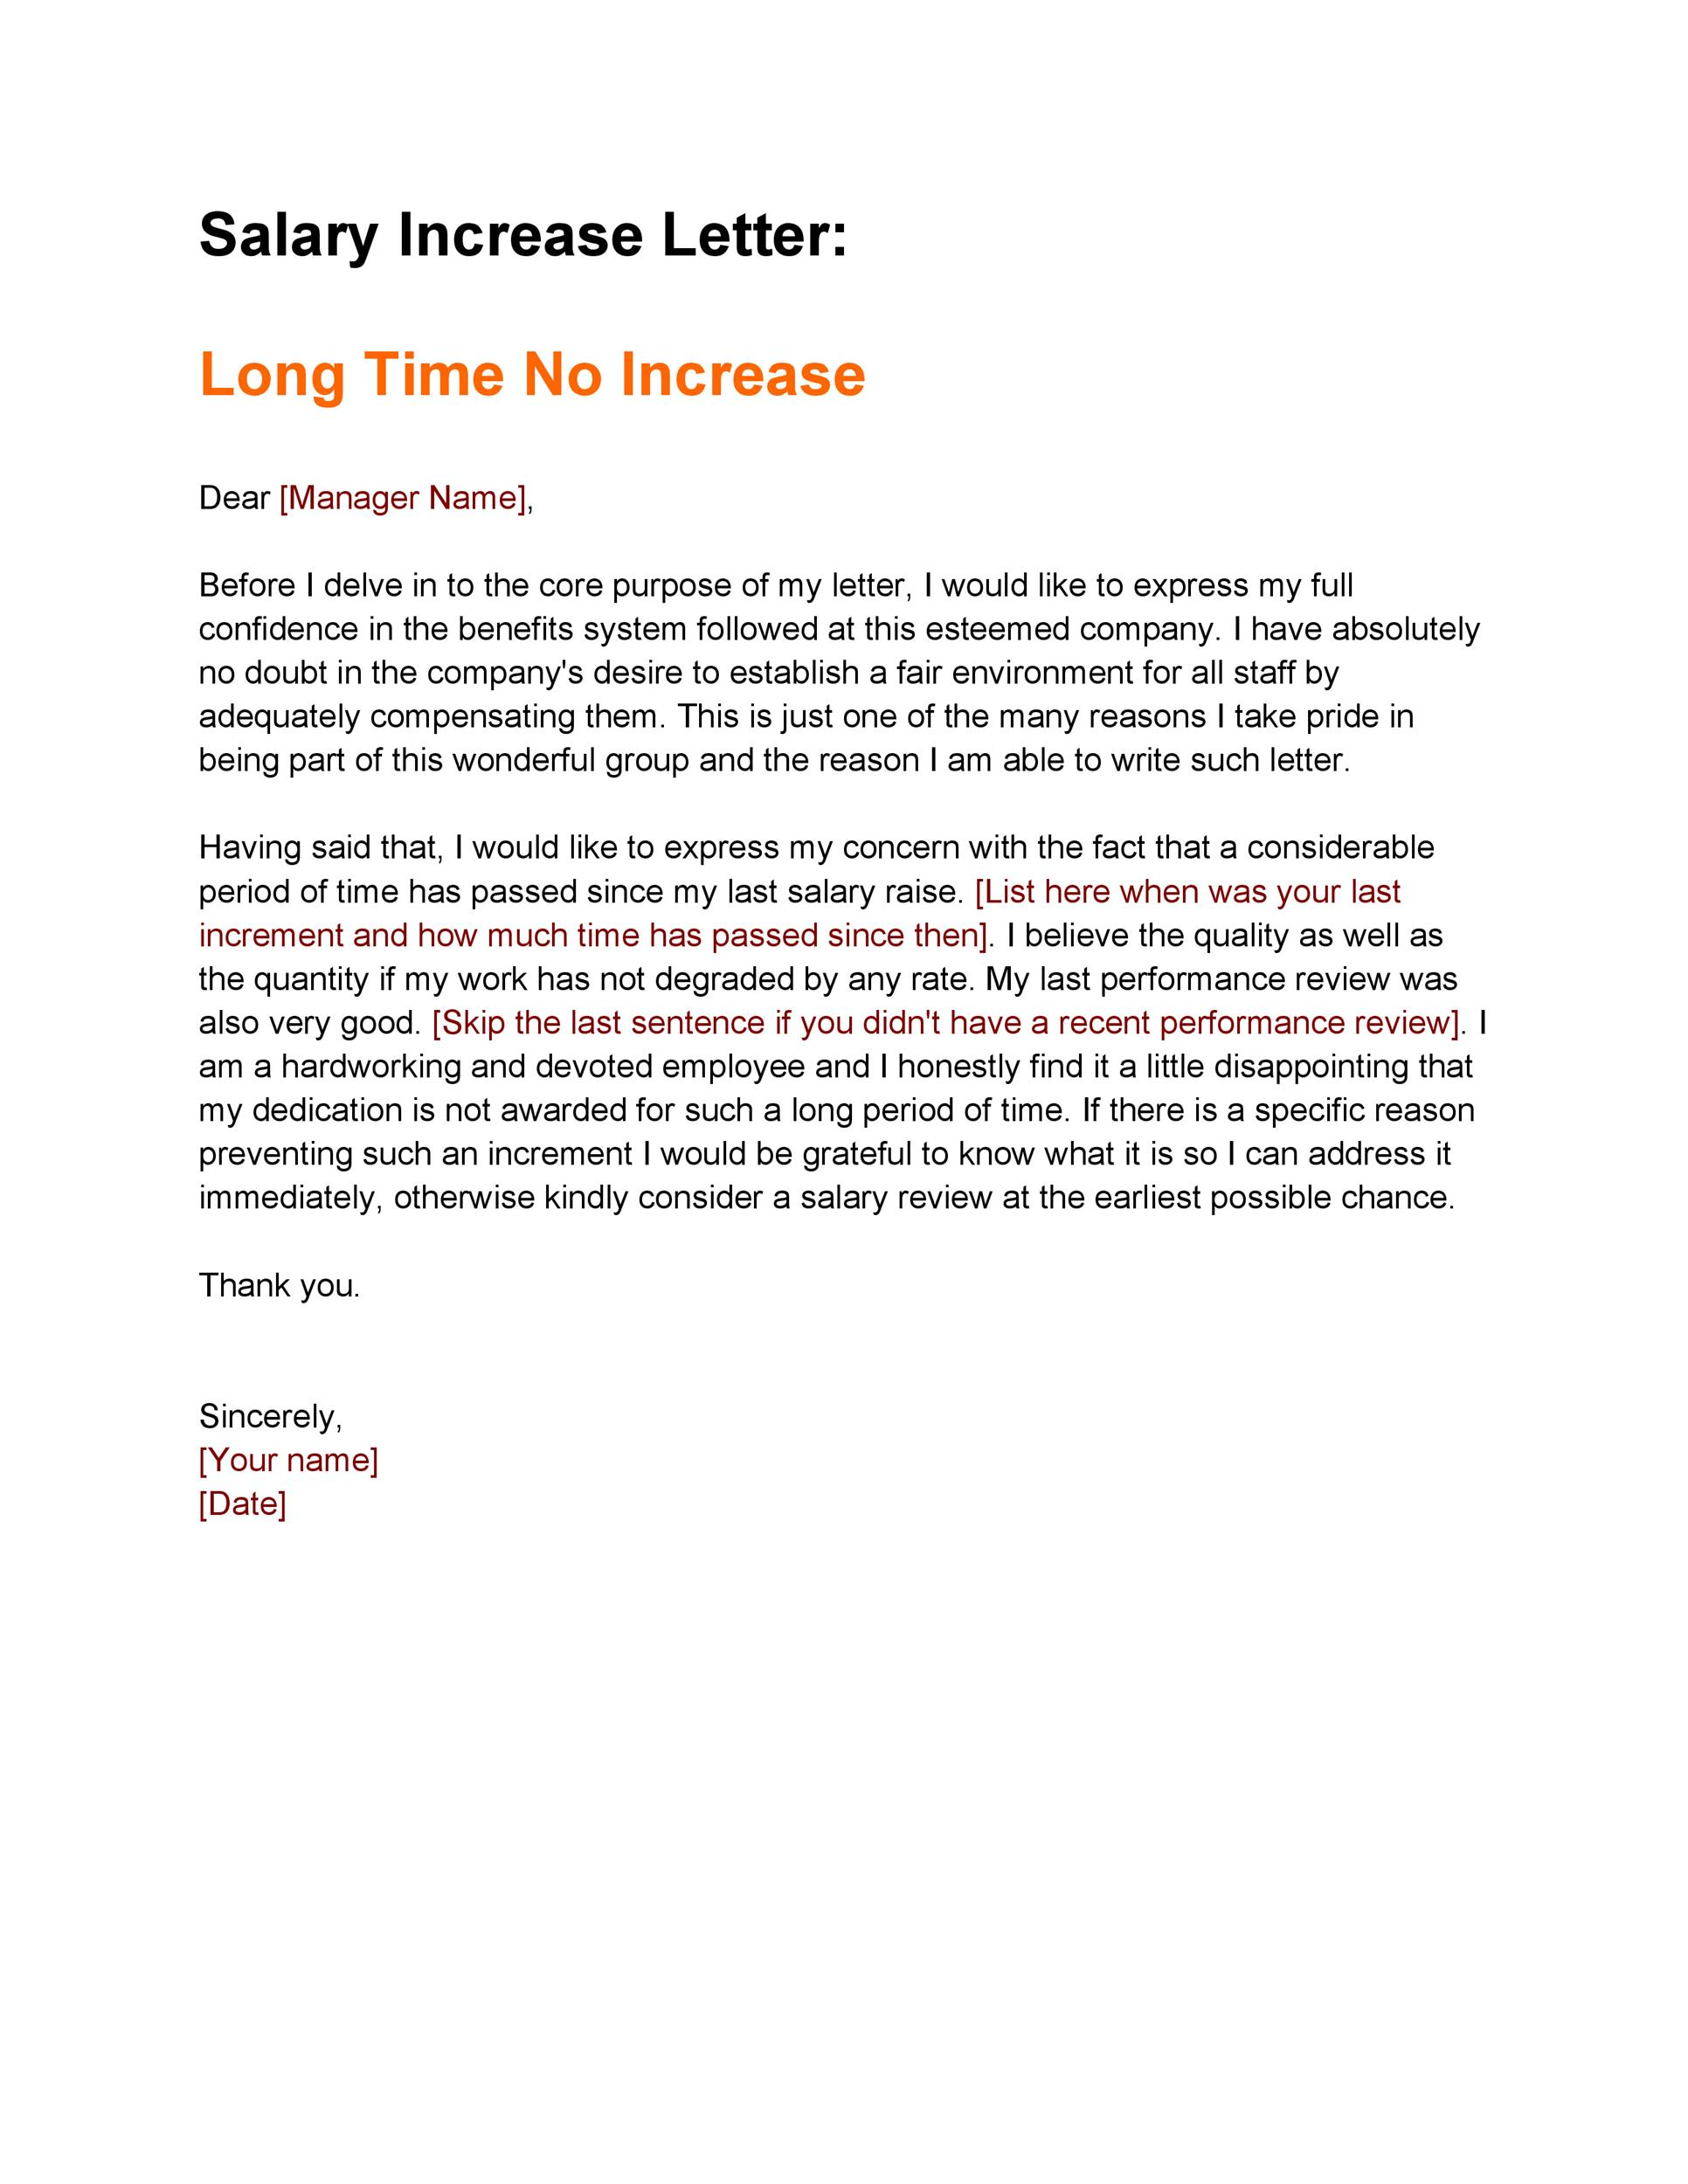 Sample Pay Raise Letter from templatelab.com